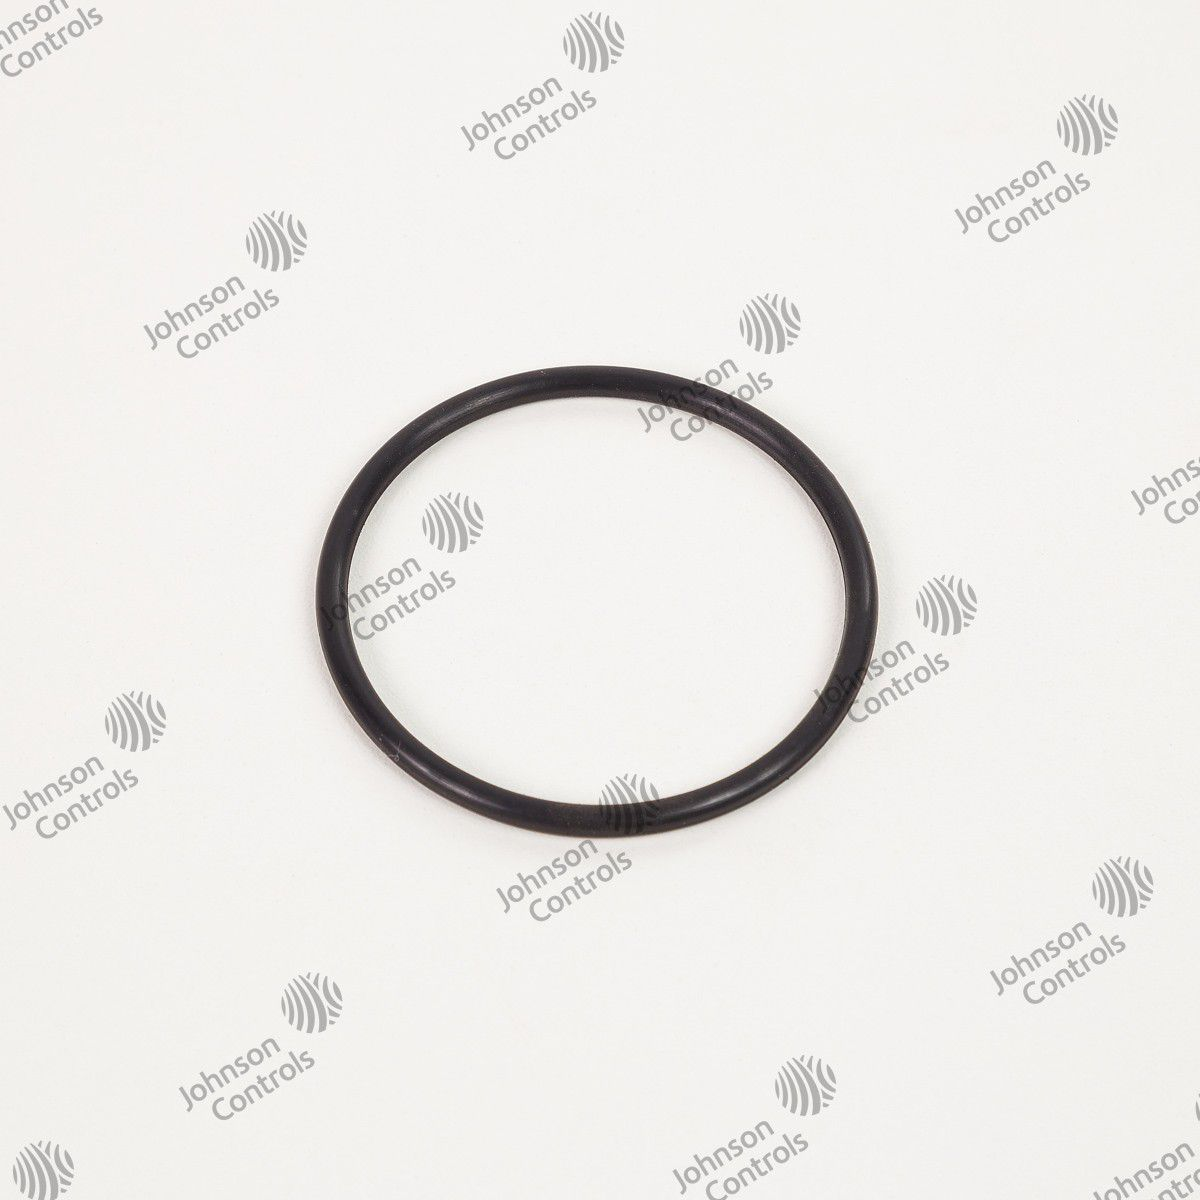 ANEL ORING 53,57/3,53-2347 - 1331+068